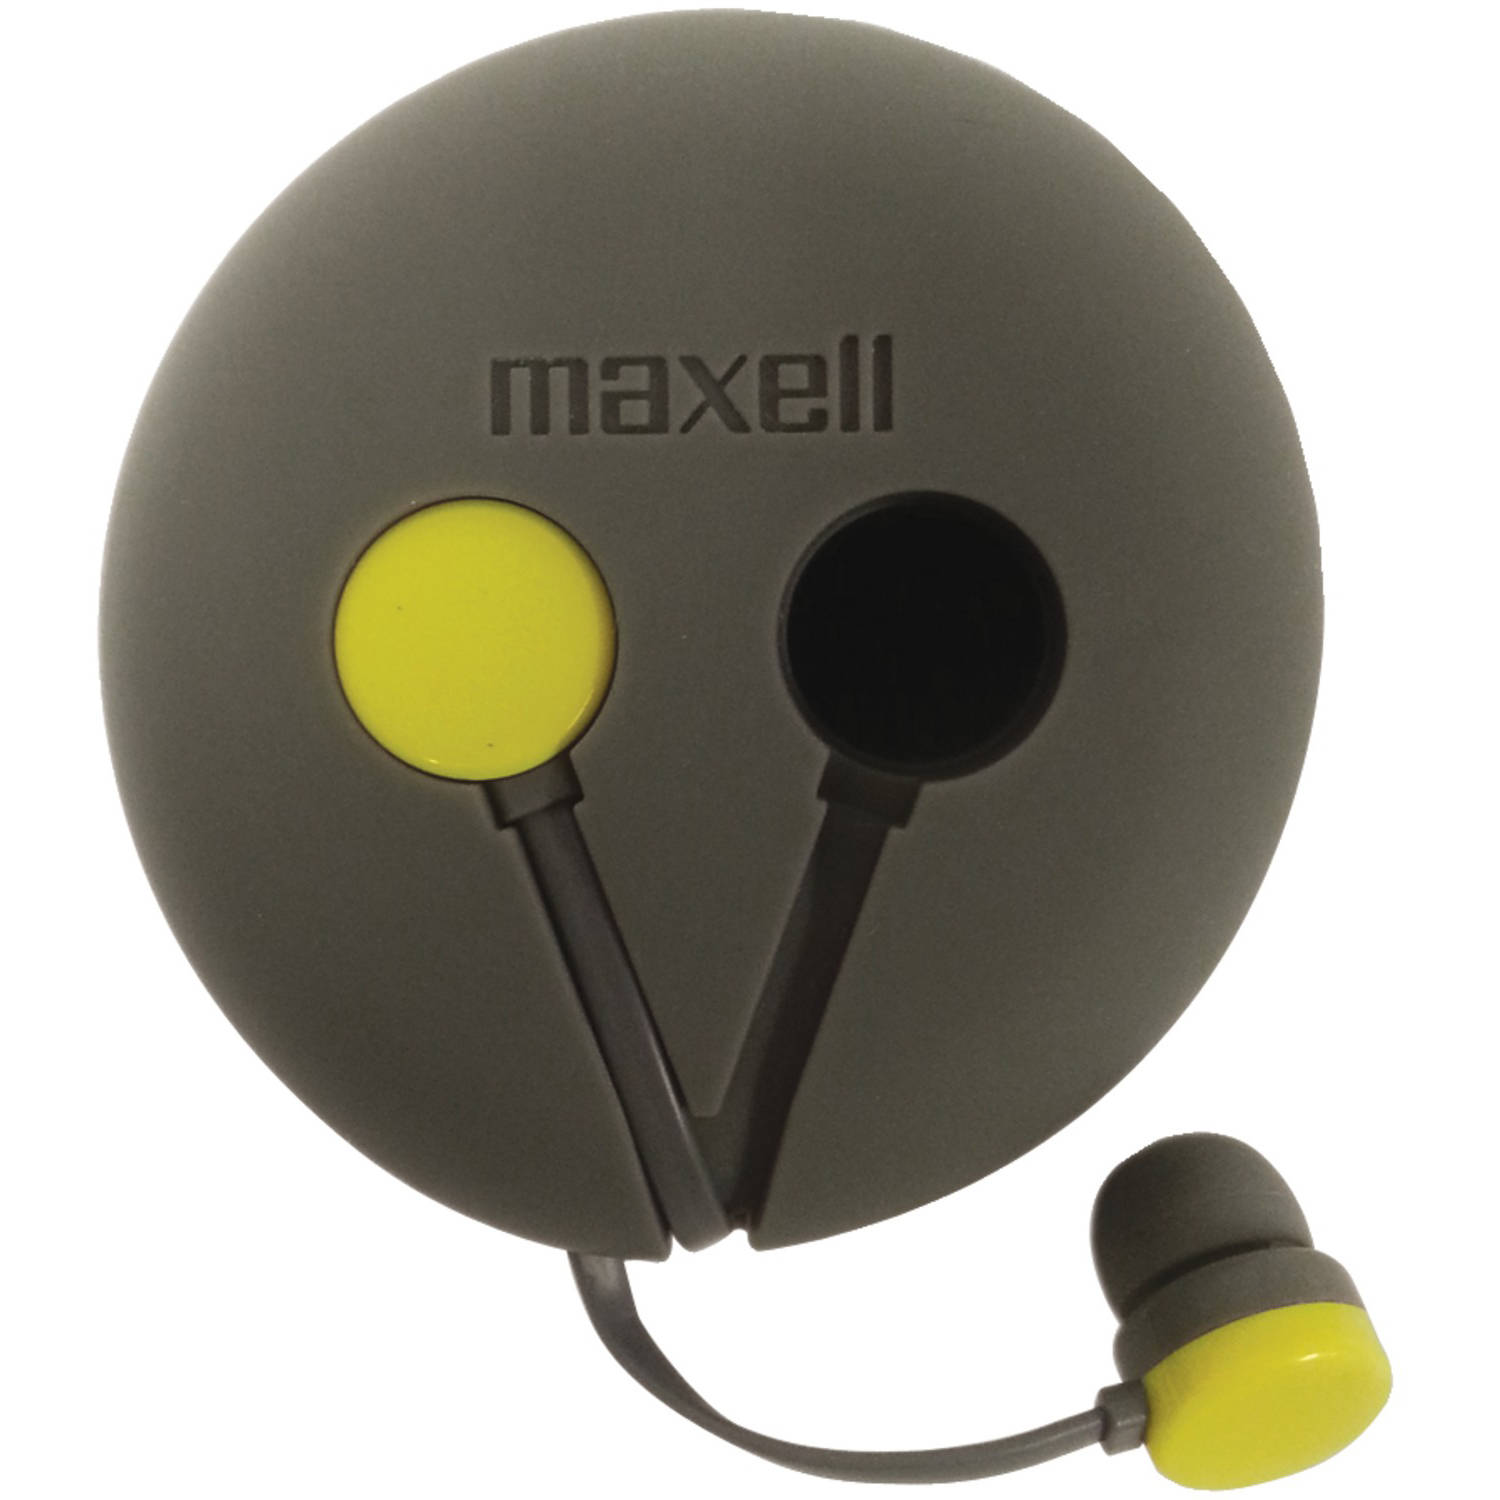 Maxell 190605 Wrap'd Earbuds with Case